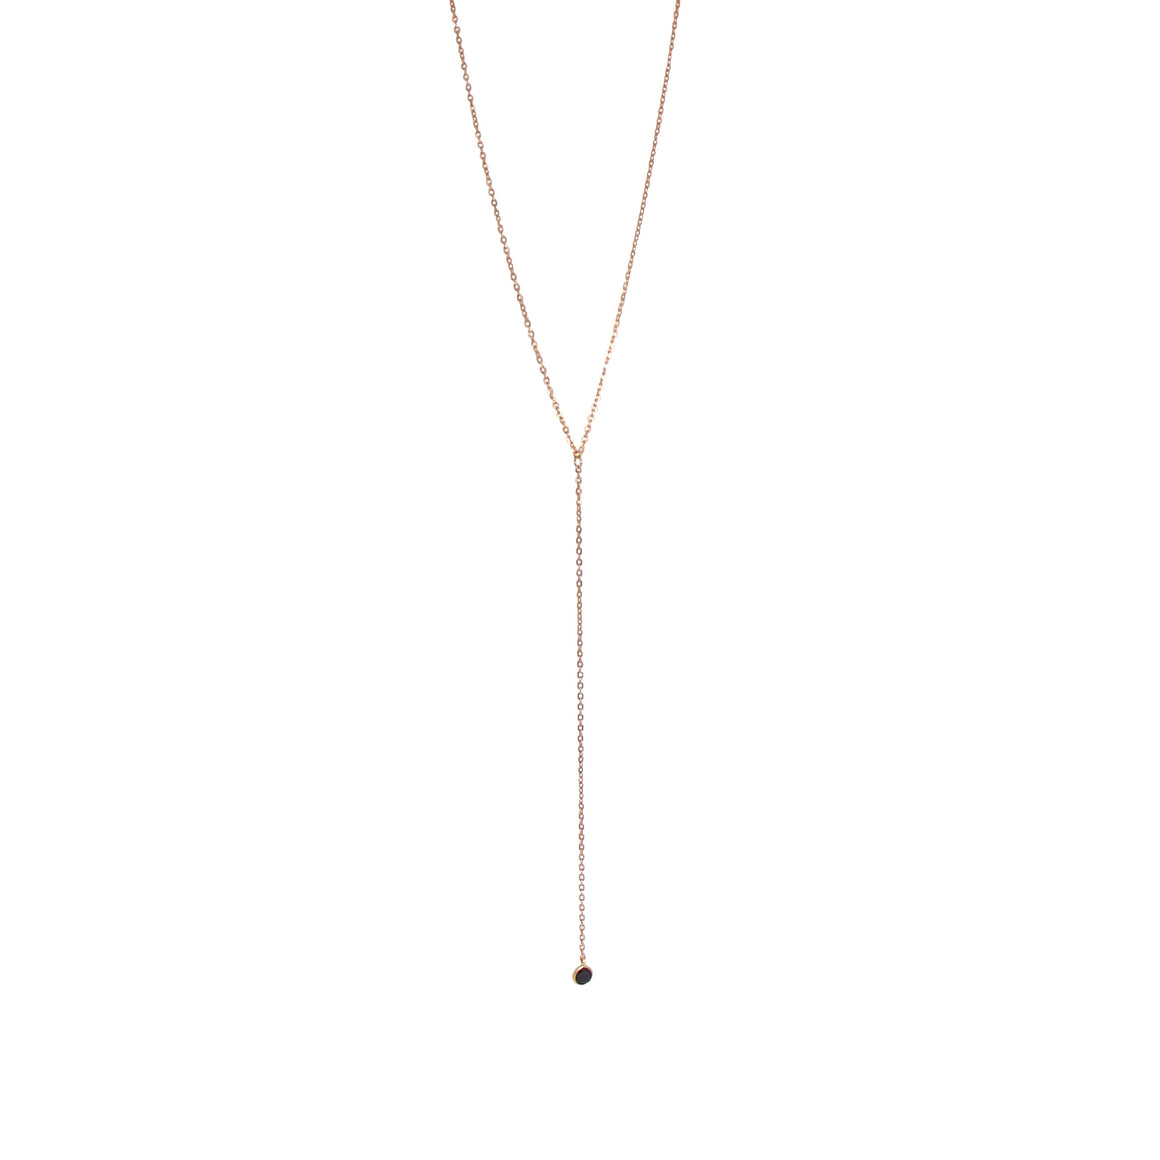 black onyx lariat necklace